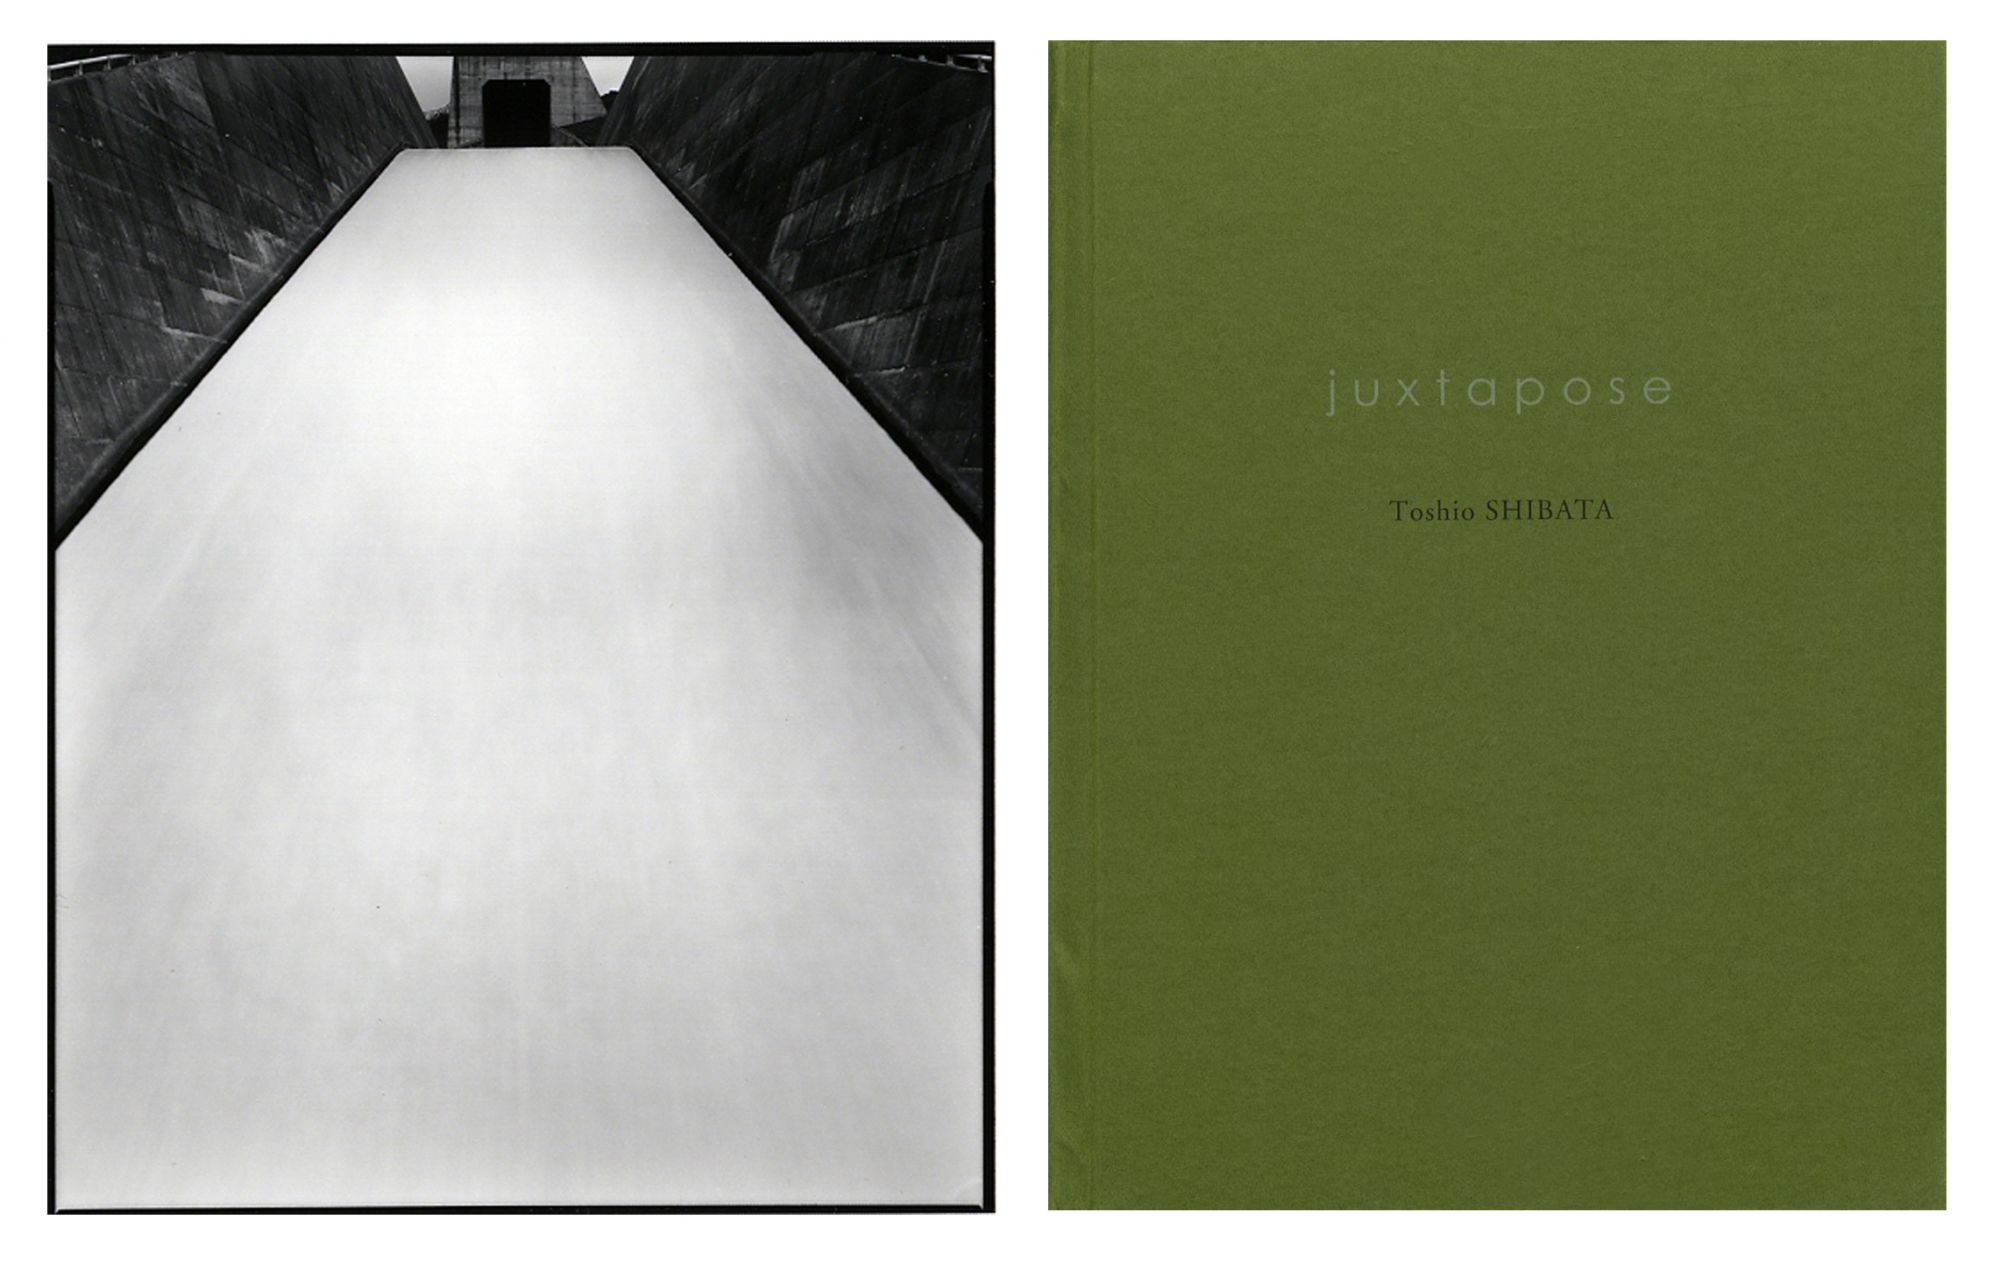 Toshio Shibata: Juxtapose, Limited Edition (with Tipped-in Gelatin Silver Print)